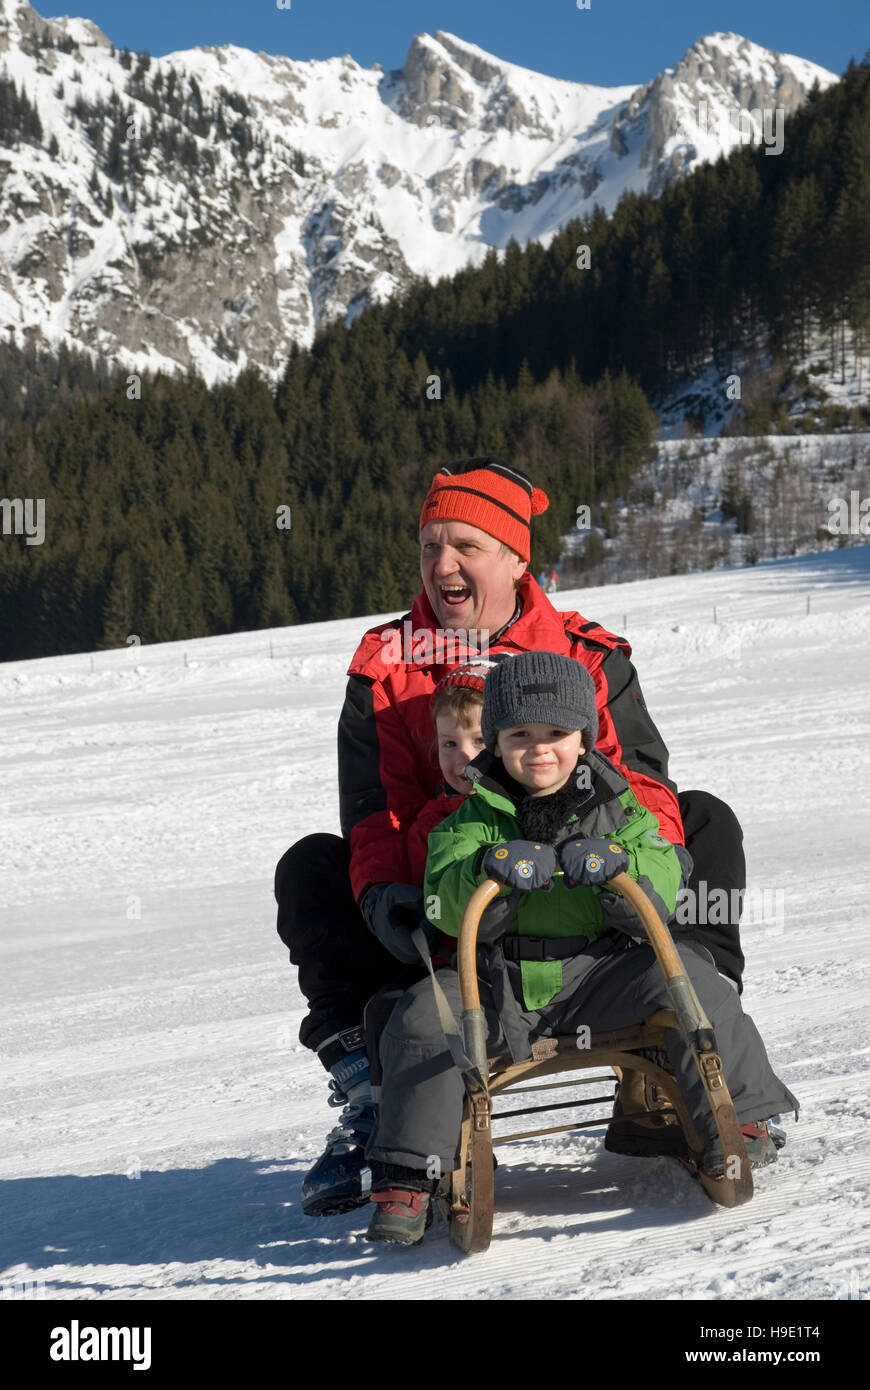 Man and children on a sledge - Stock Image